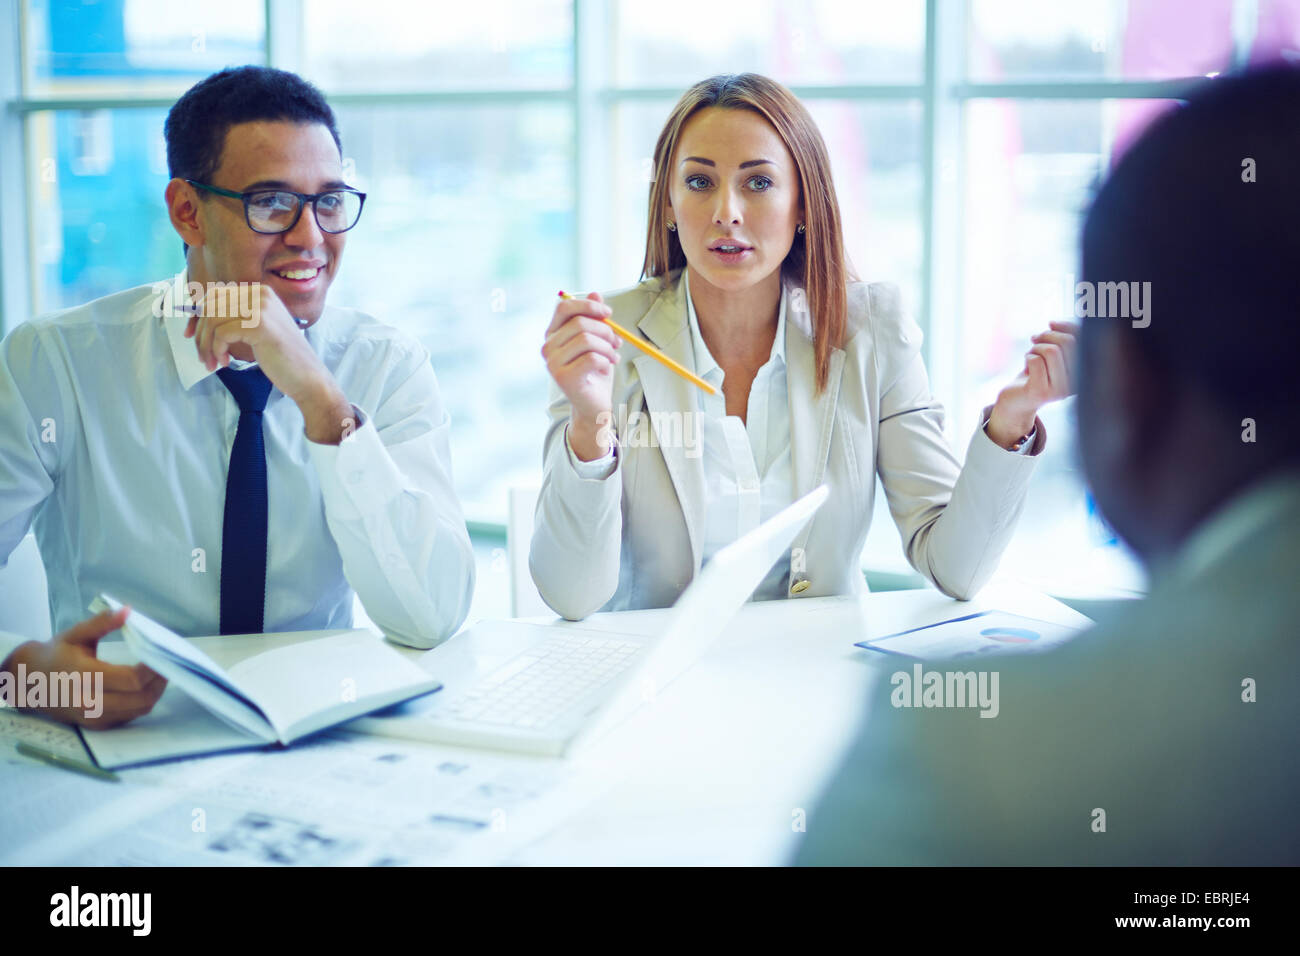 Businesswoman expressing her opinion at meeting - Stock Image